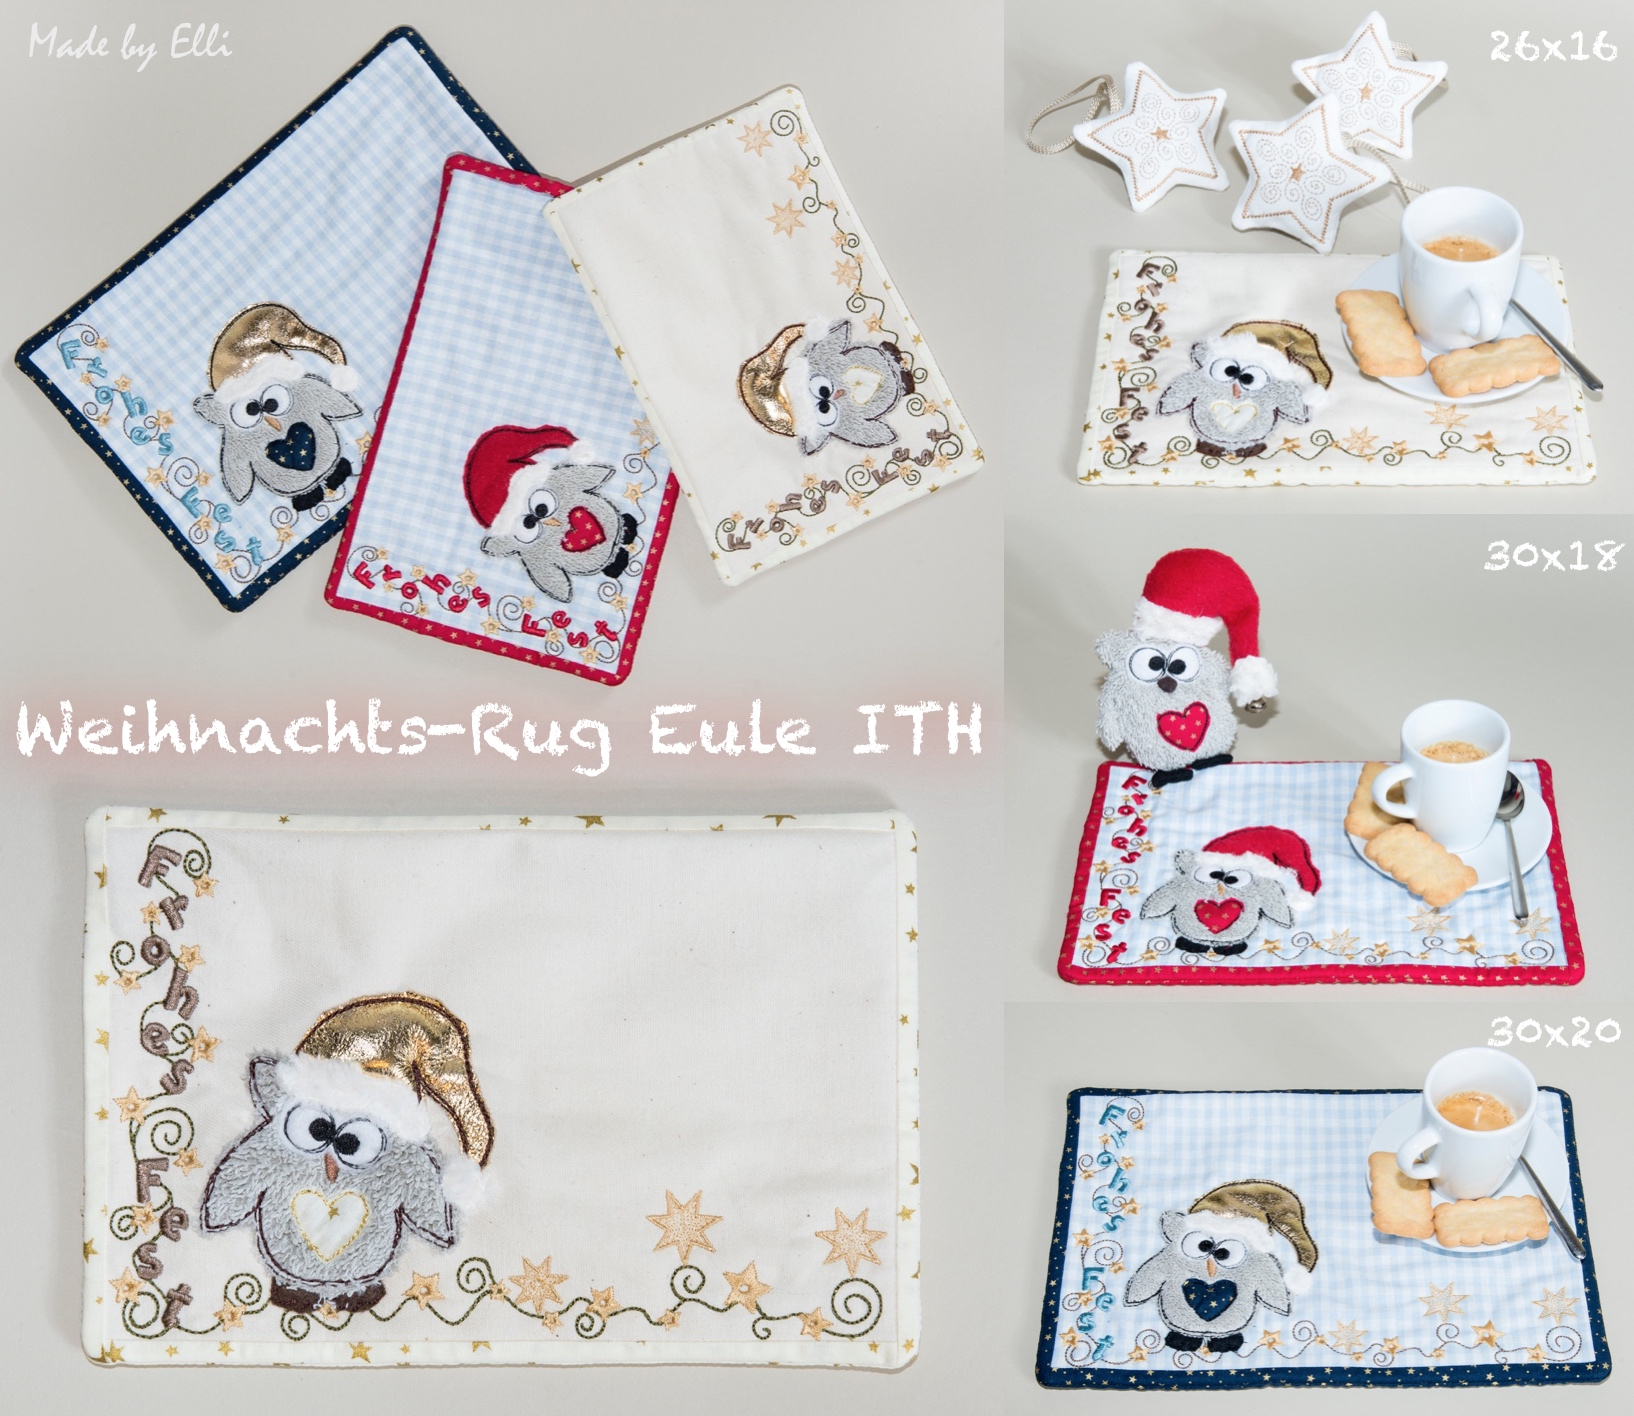 Weihnachts-Rug-Eule ith